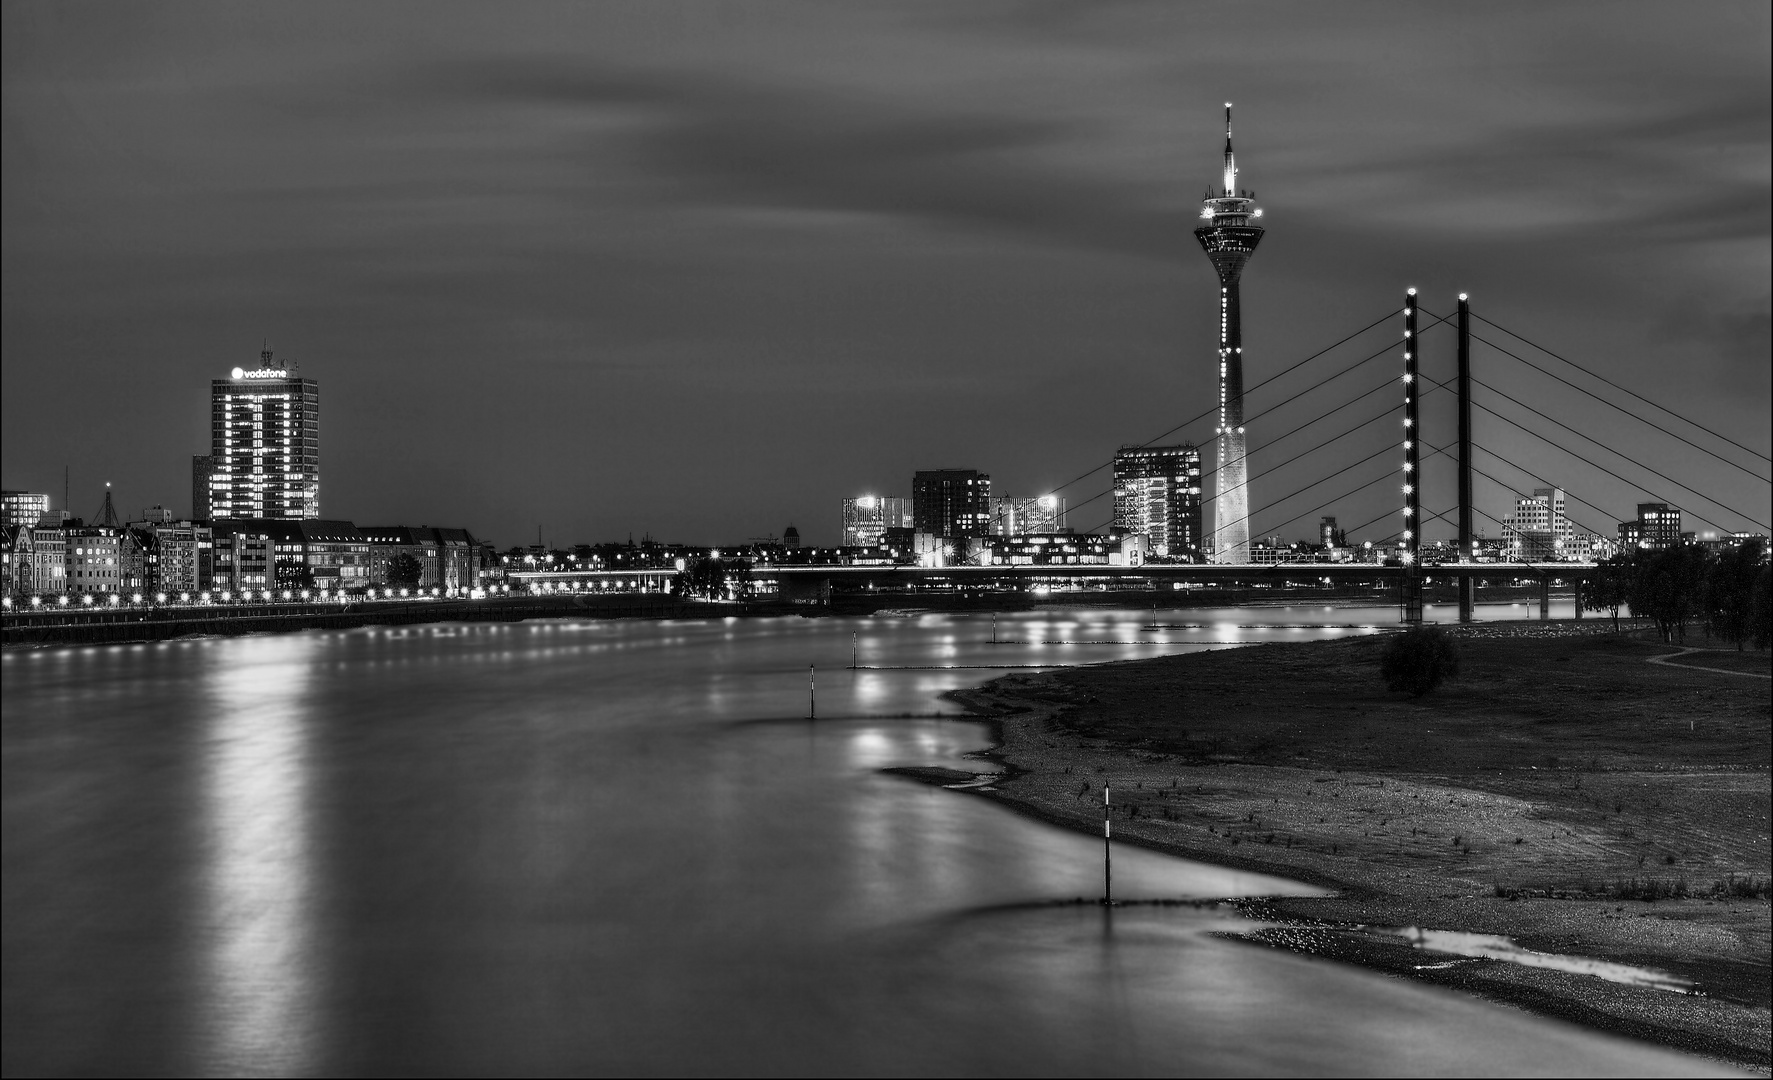 skyline d sseldorf foto bild deutschland europe nordrhein westfalen bilder auf fotocommunity. Black Bedroom Furniture Sets. Home Design Ideas